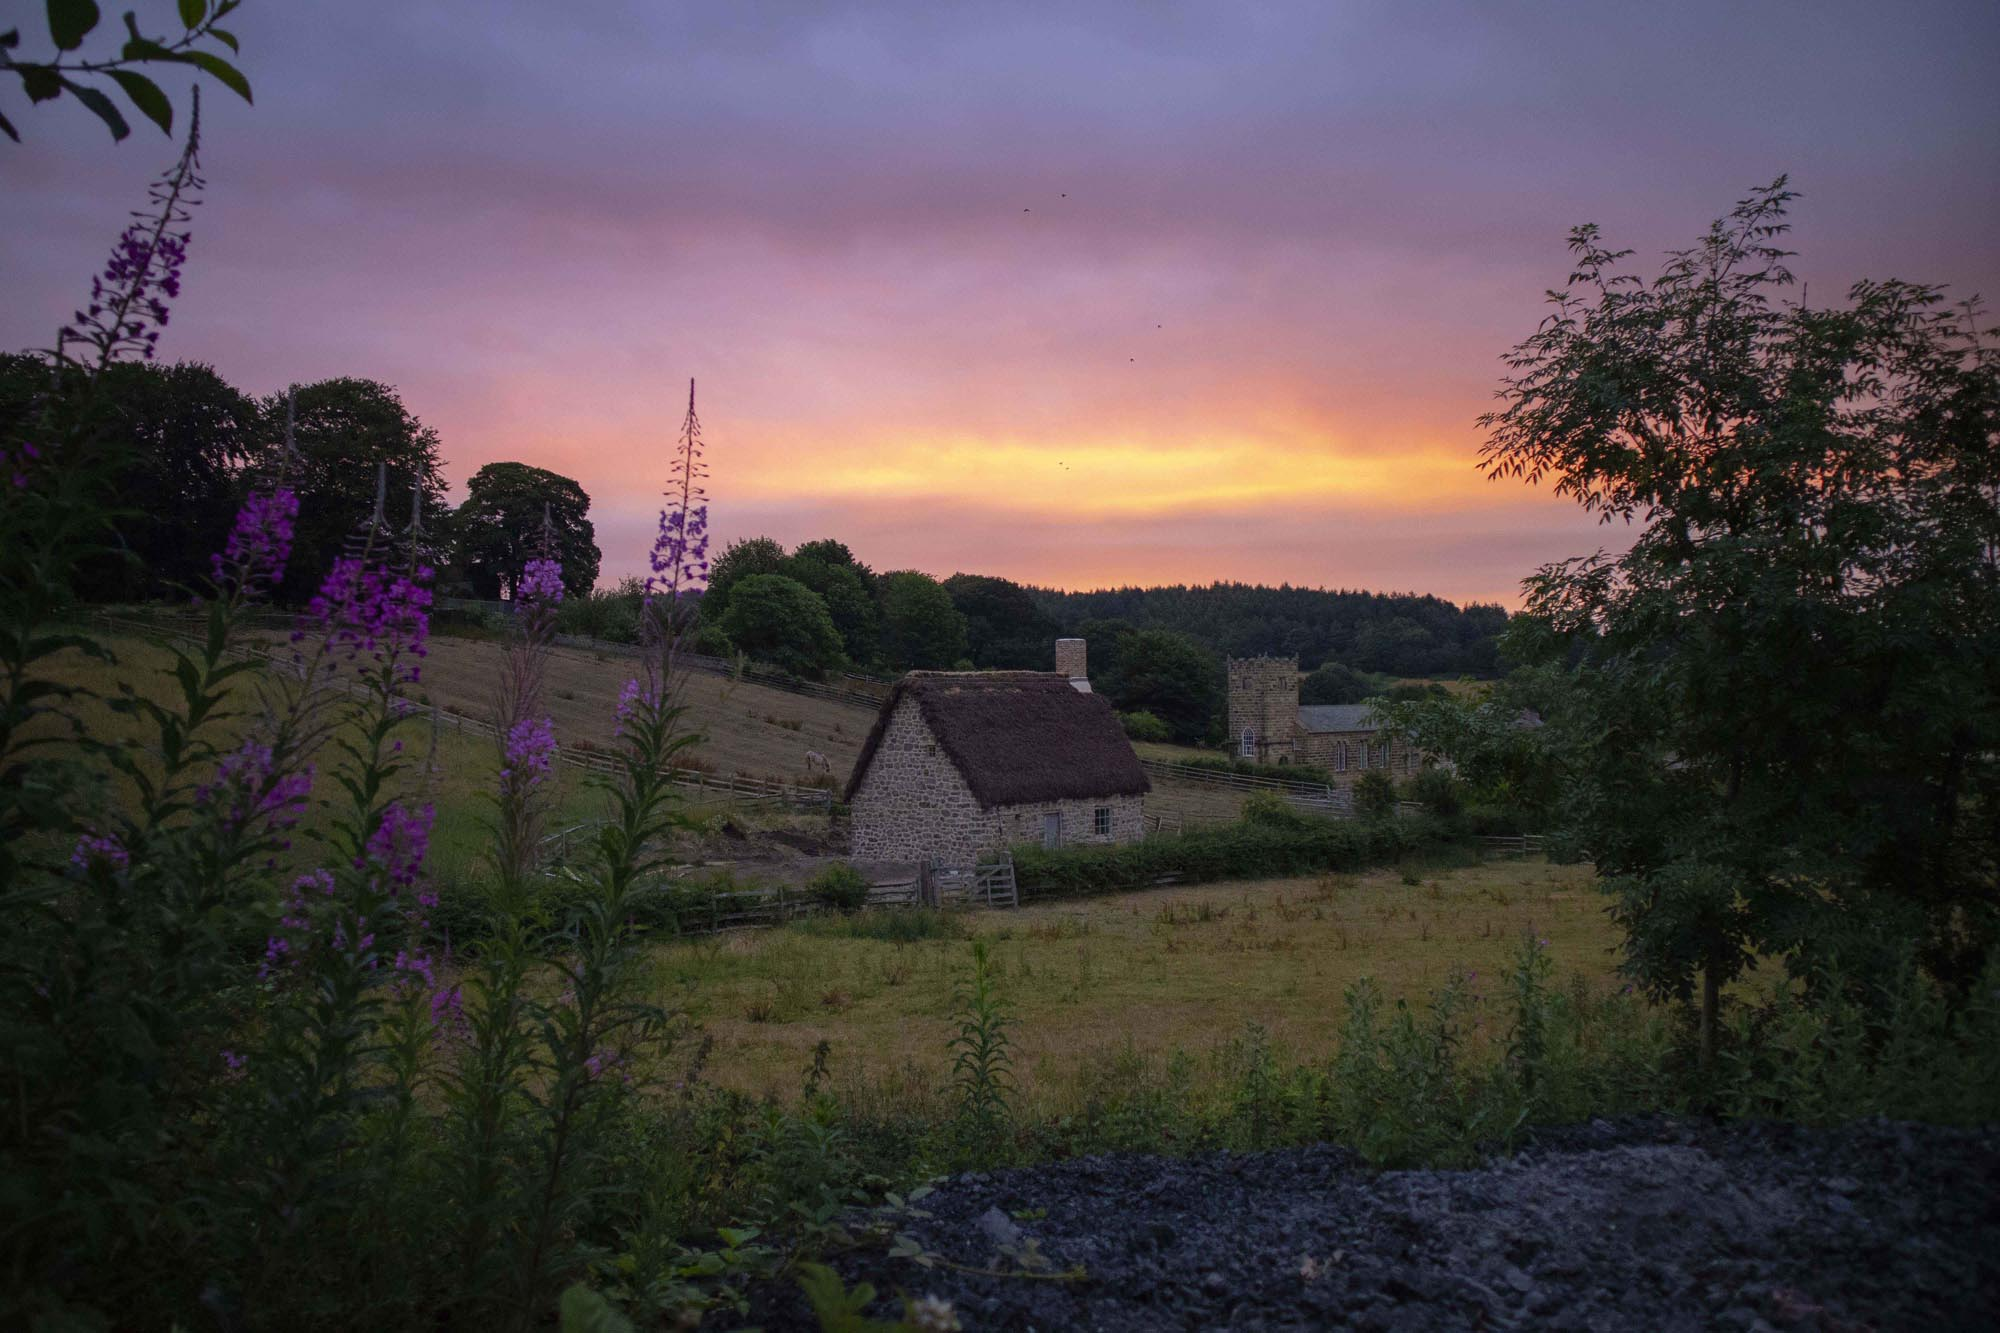 a photo of a stone cottage seen across fields with a summer red sunrise in the skies above